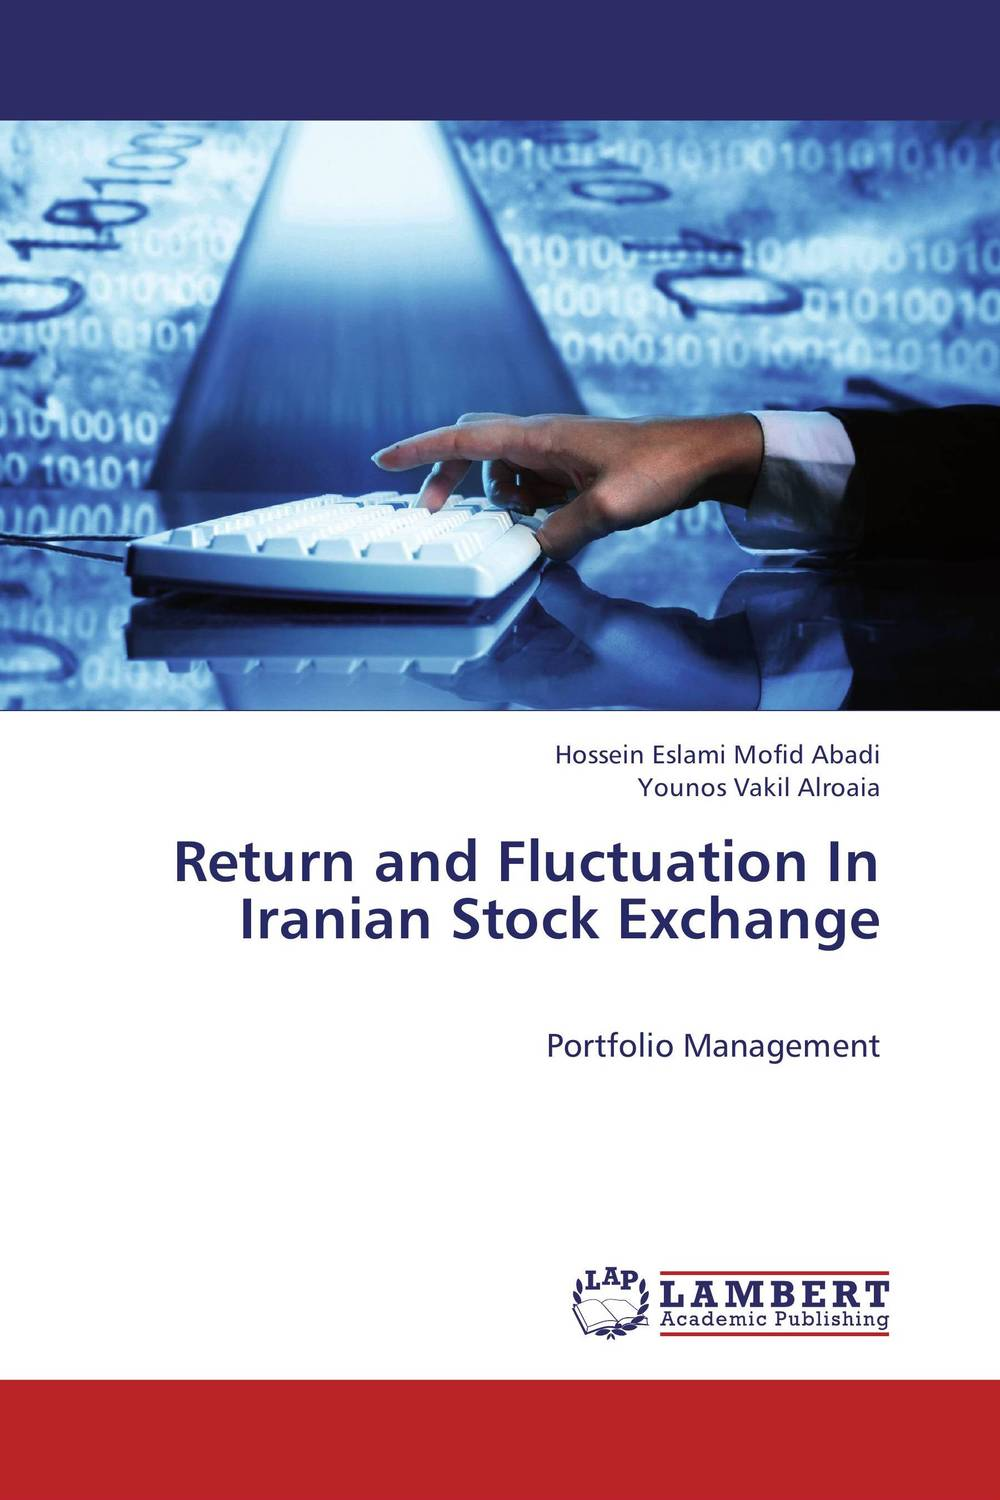 Return and Fluctuation In Iranian Stock Exchange corporate governance and firm value